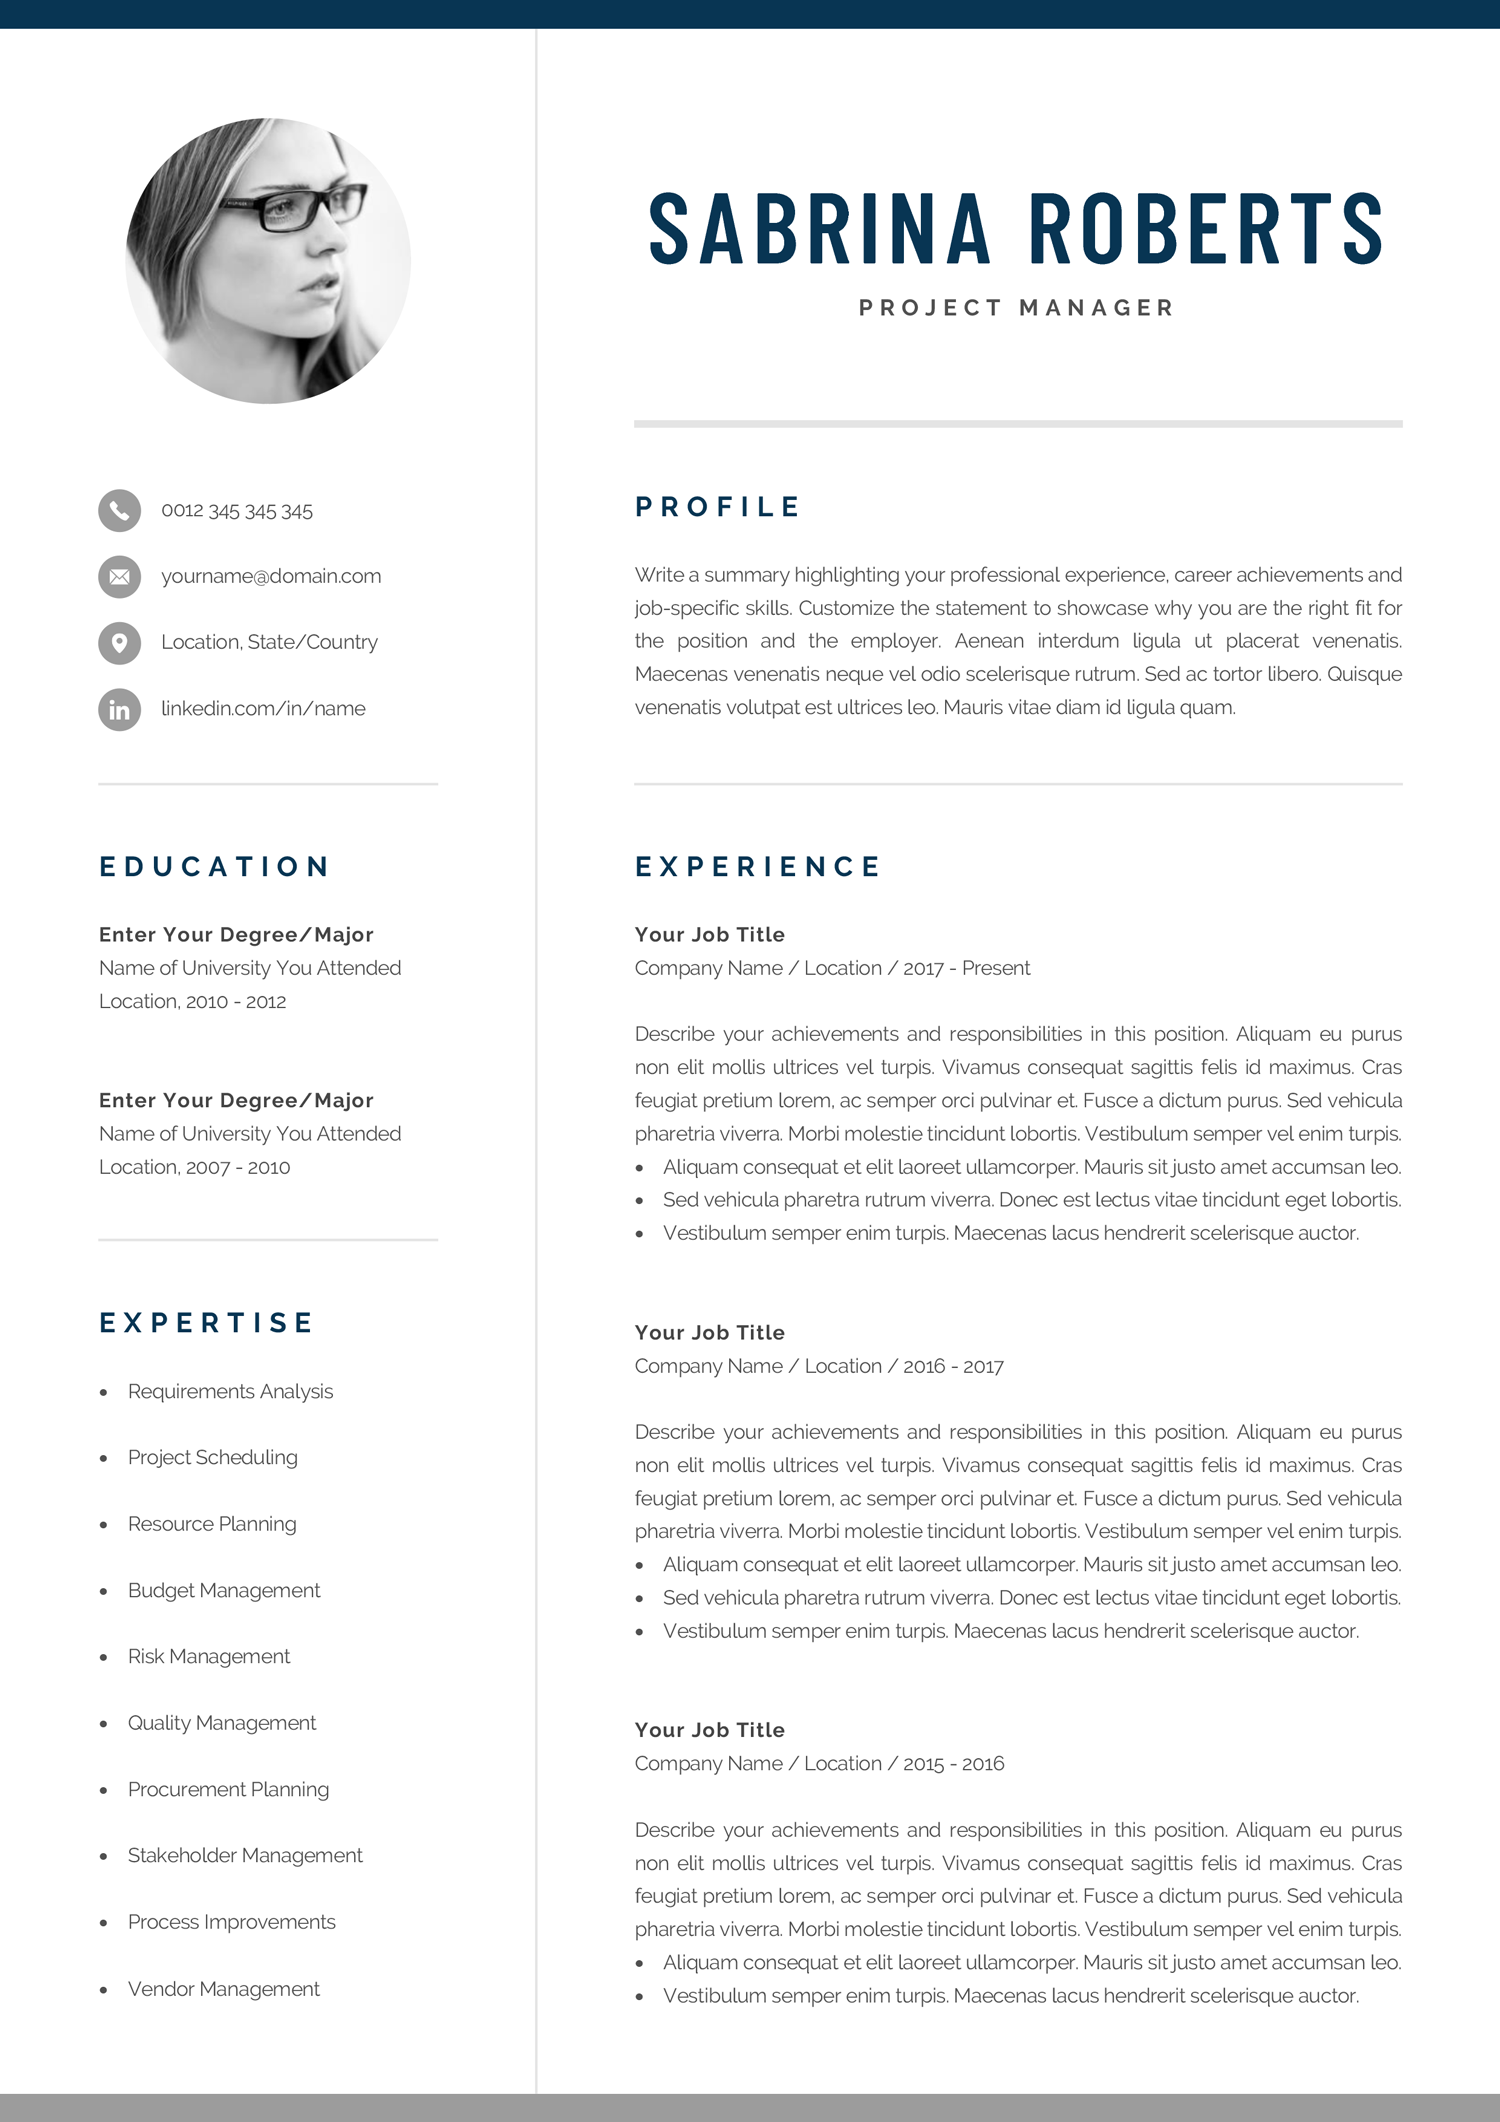 Resume Template Professional Resume Cv Template Modern Etsy